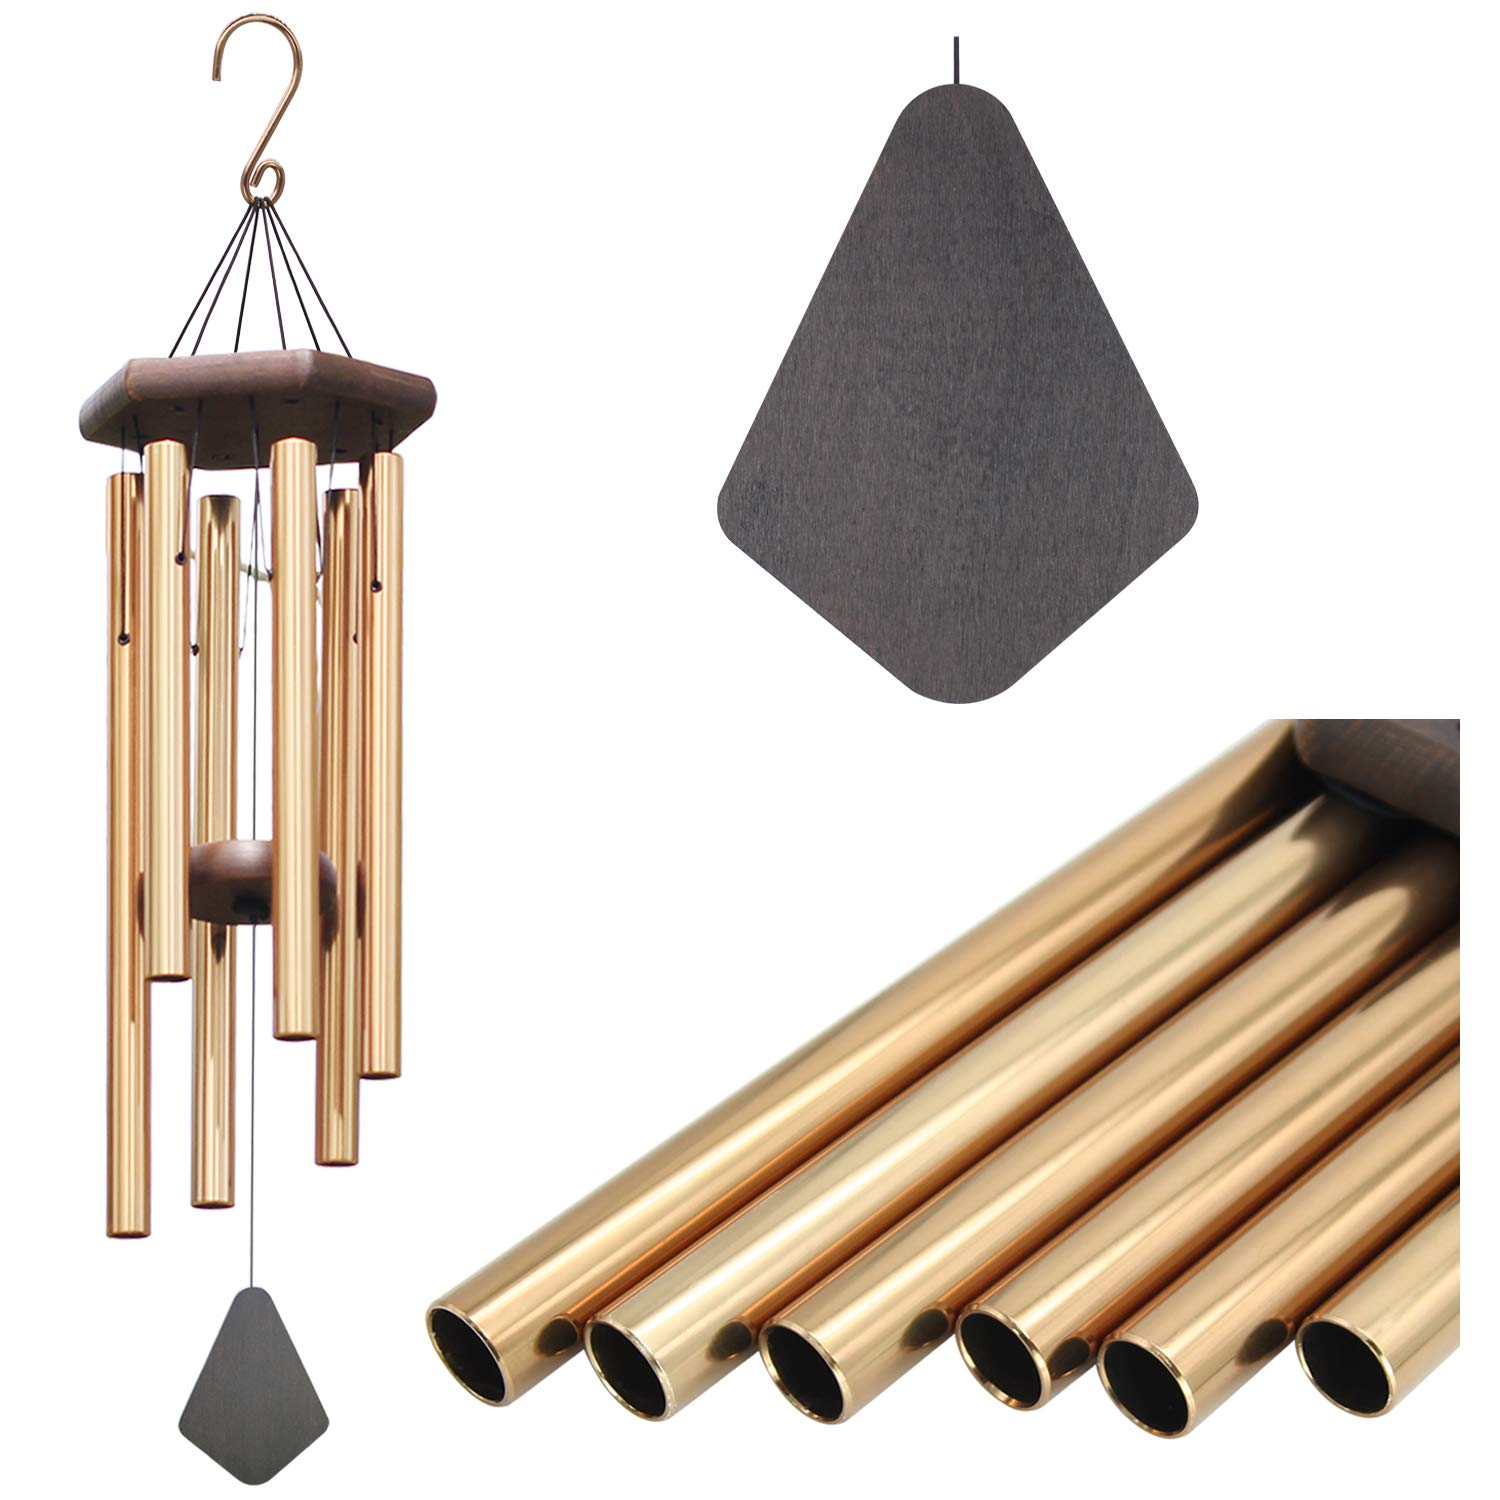 Wind Chimes Outdoor Large Deep Tone, Memorial Personalized Wind Chimes 6 Long Metal Tubes, Sympathy Wind Chime Amazing Grace Sound, Perfect Garden, Patio Yard(30'' Bronze)